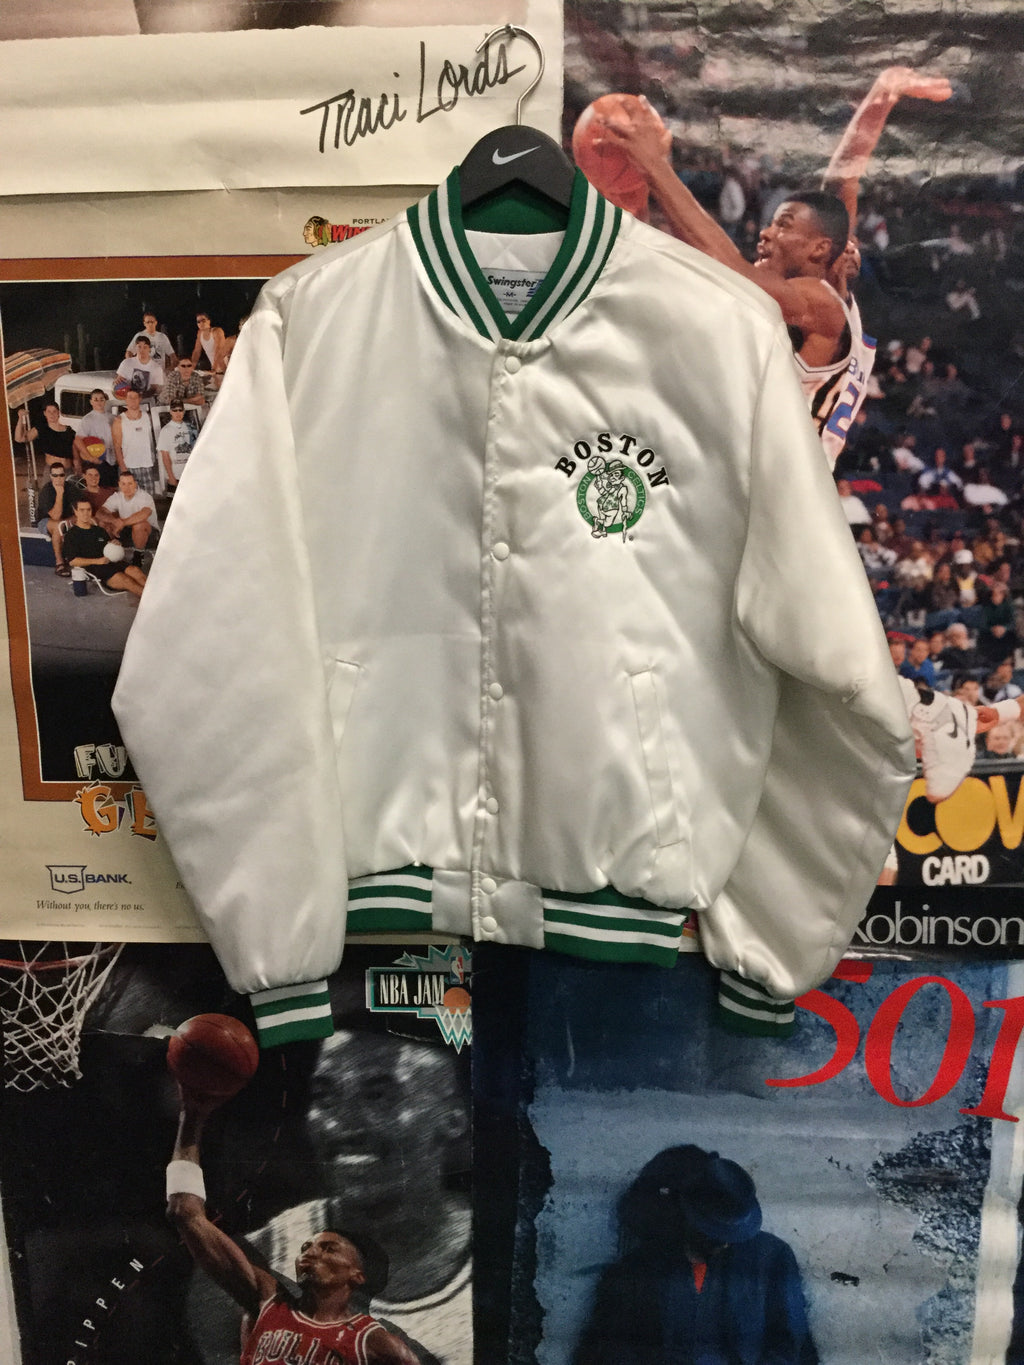 Swingster Boston Celtics Satin Jacket Medium - Decades of dope